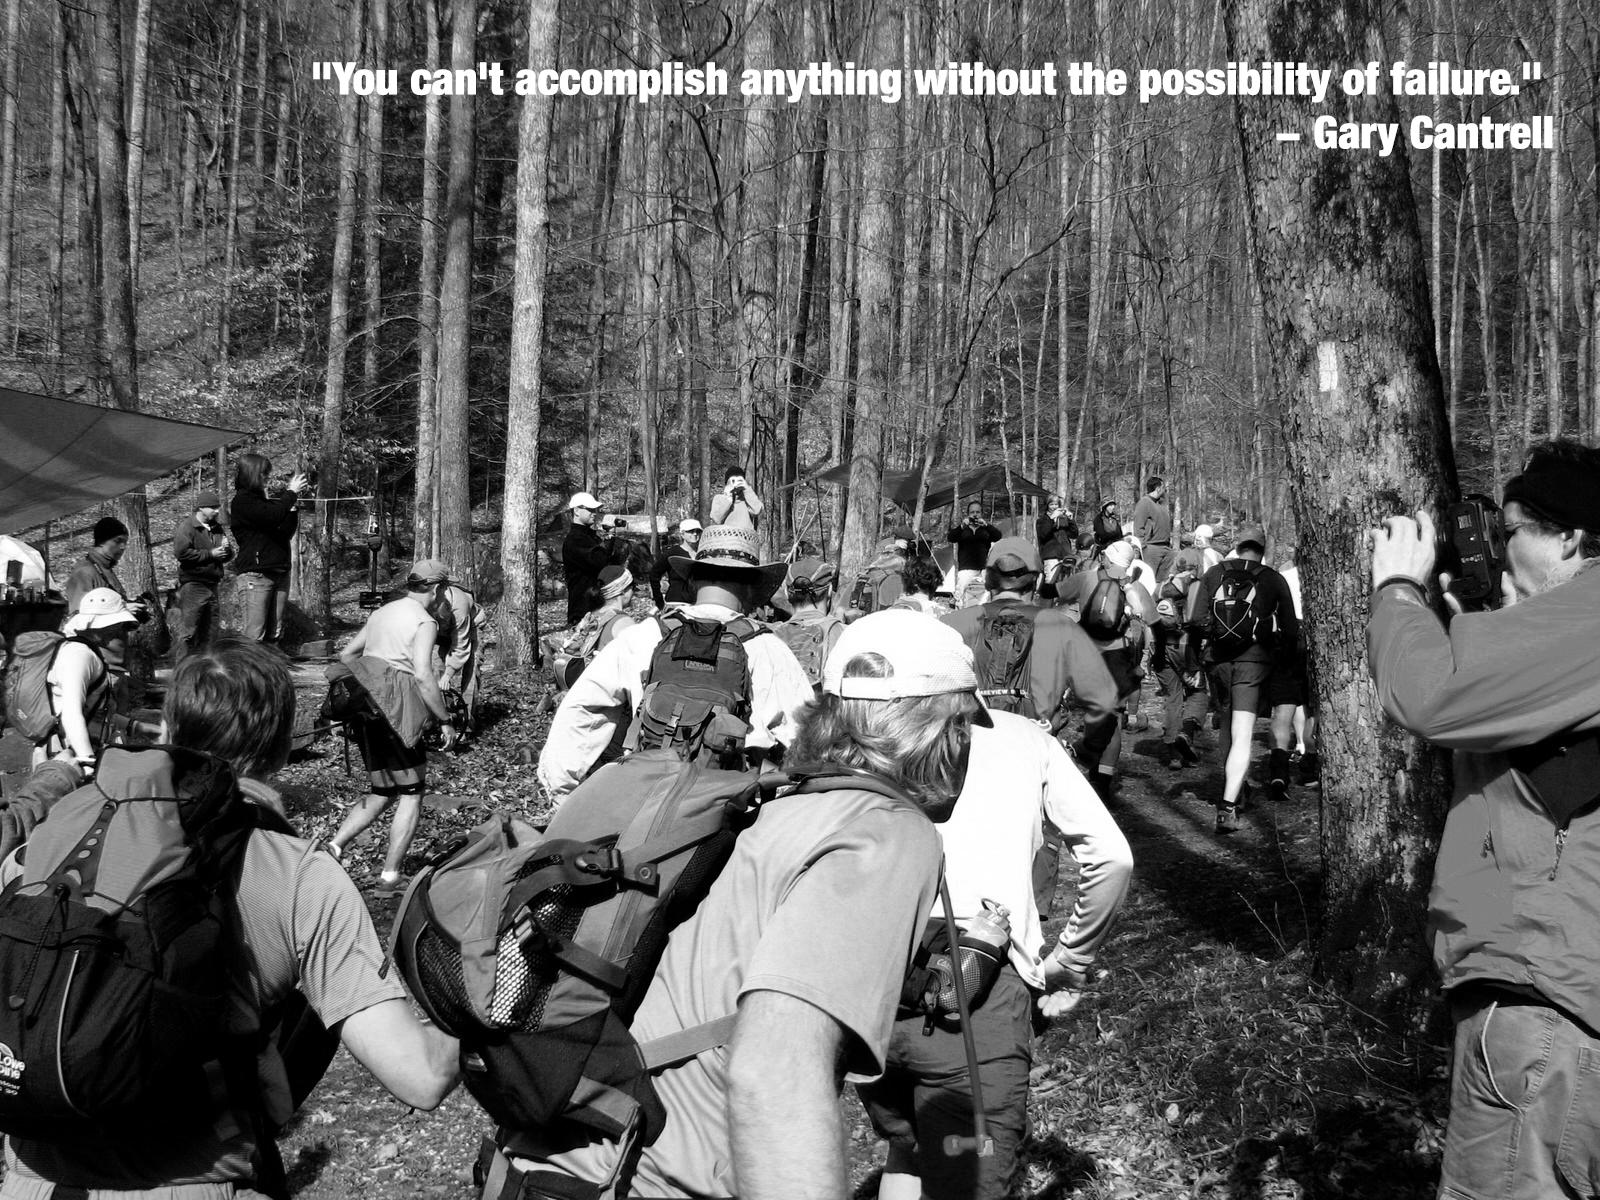 [Image] Wise words from the creator of one of the world's toughest footraces